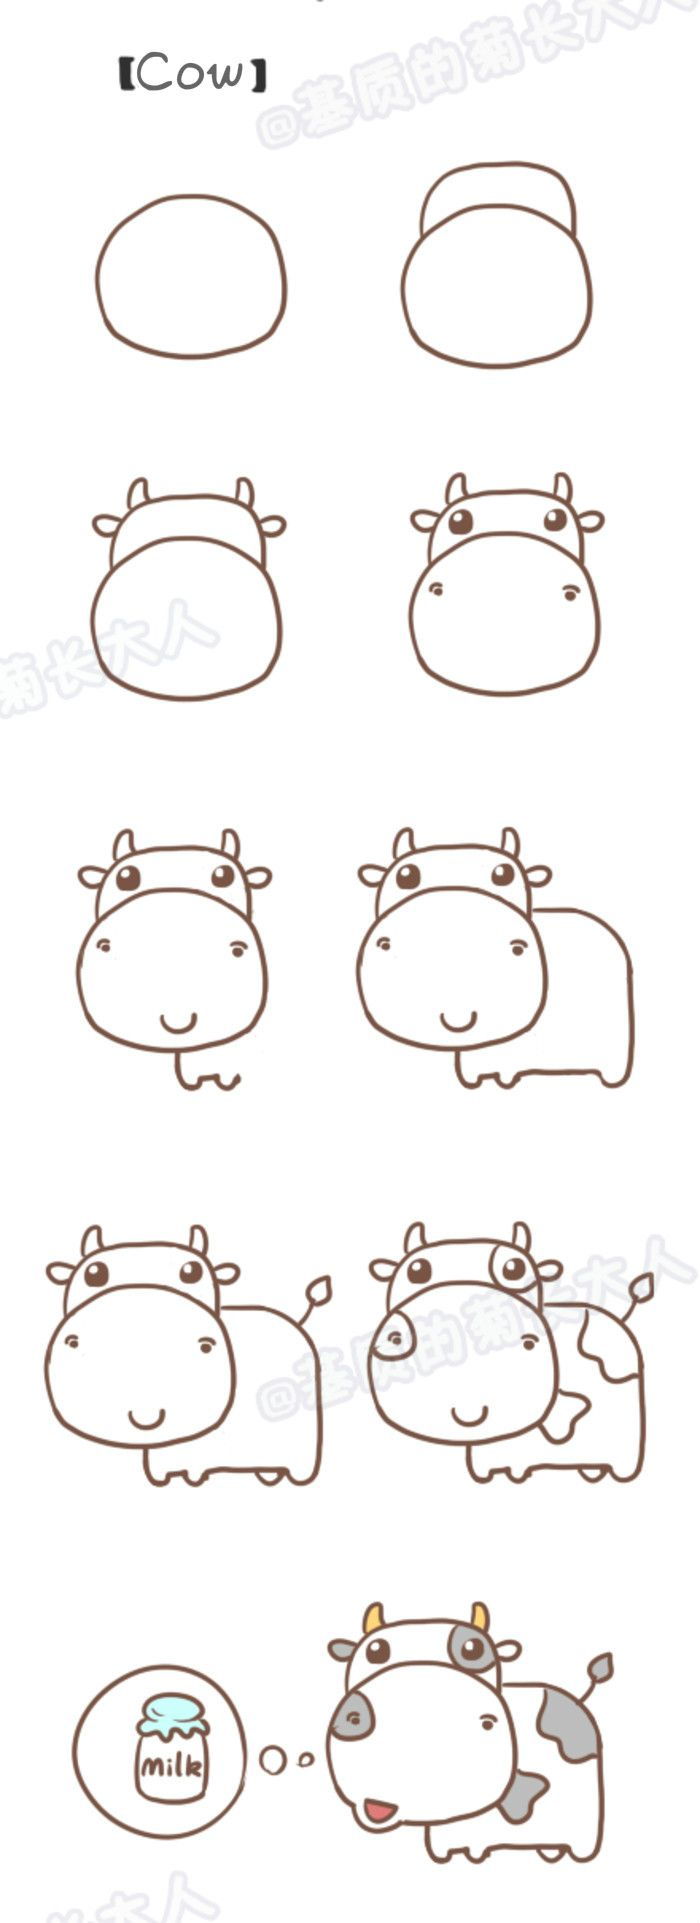 Step By Step Drawing Learn To Draw A Cow Dessins étapes